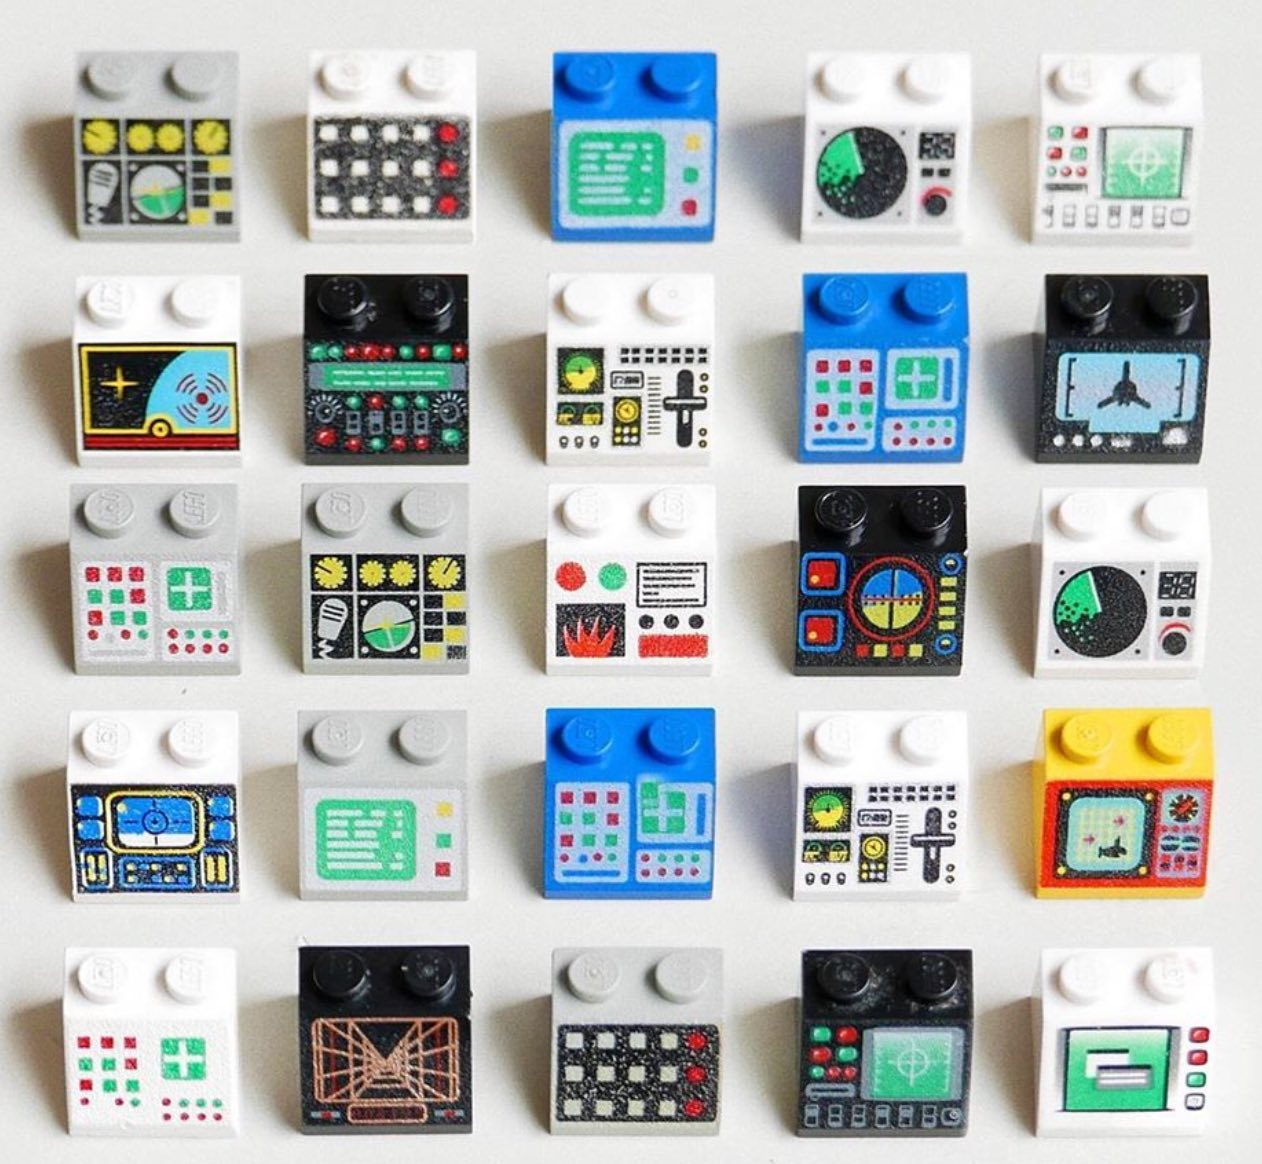 The various Lego computer interfaces